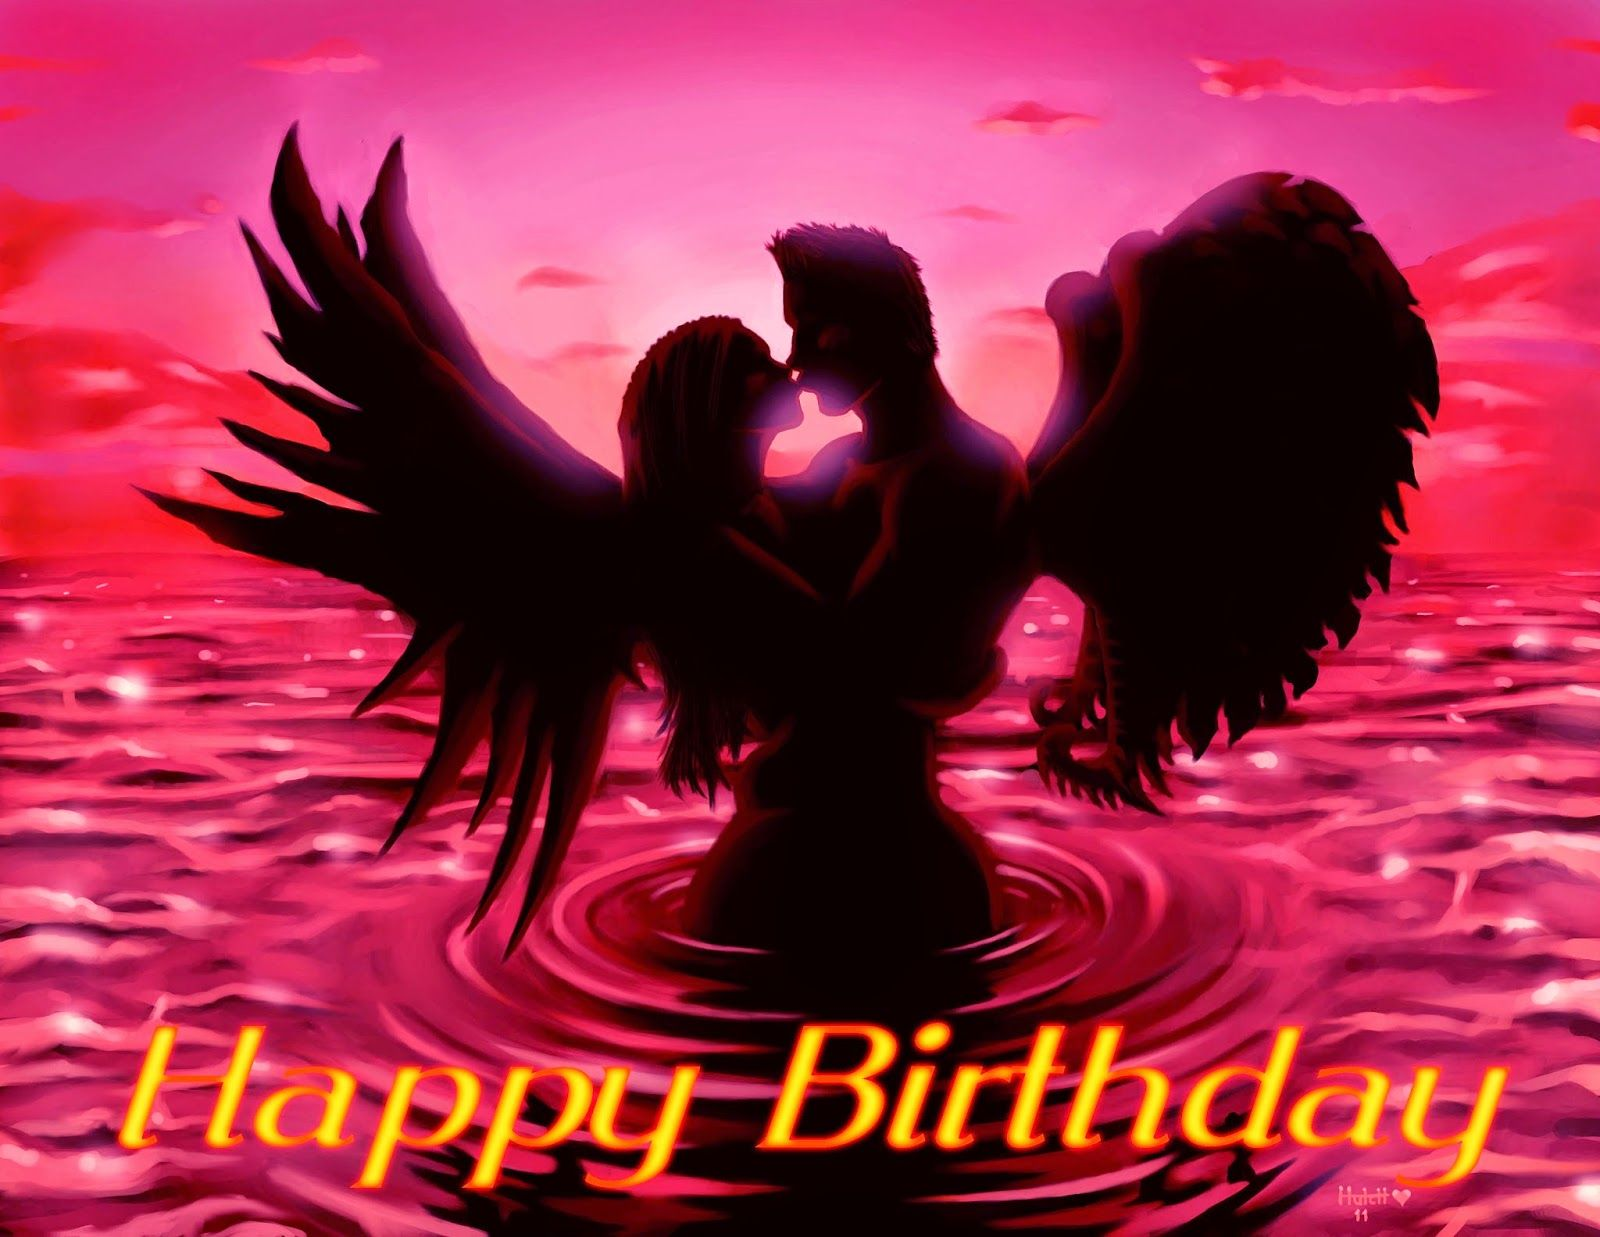 Download free happy birthday love images stuff to buy download free happy birthday love images kristyandbryce Images